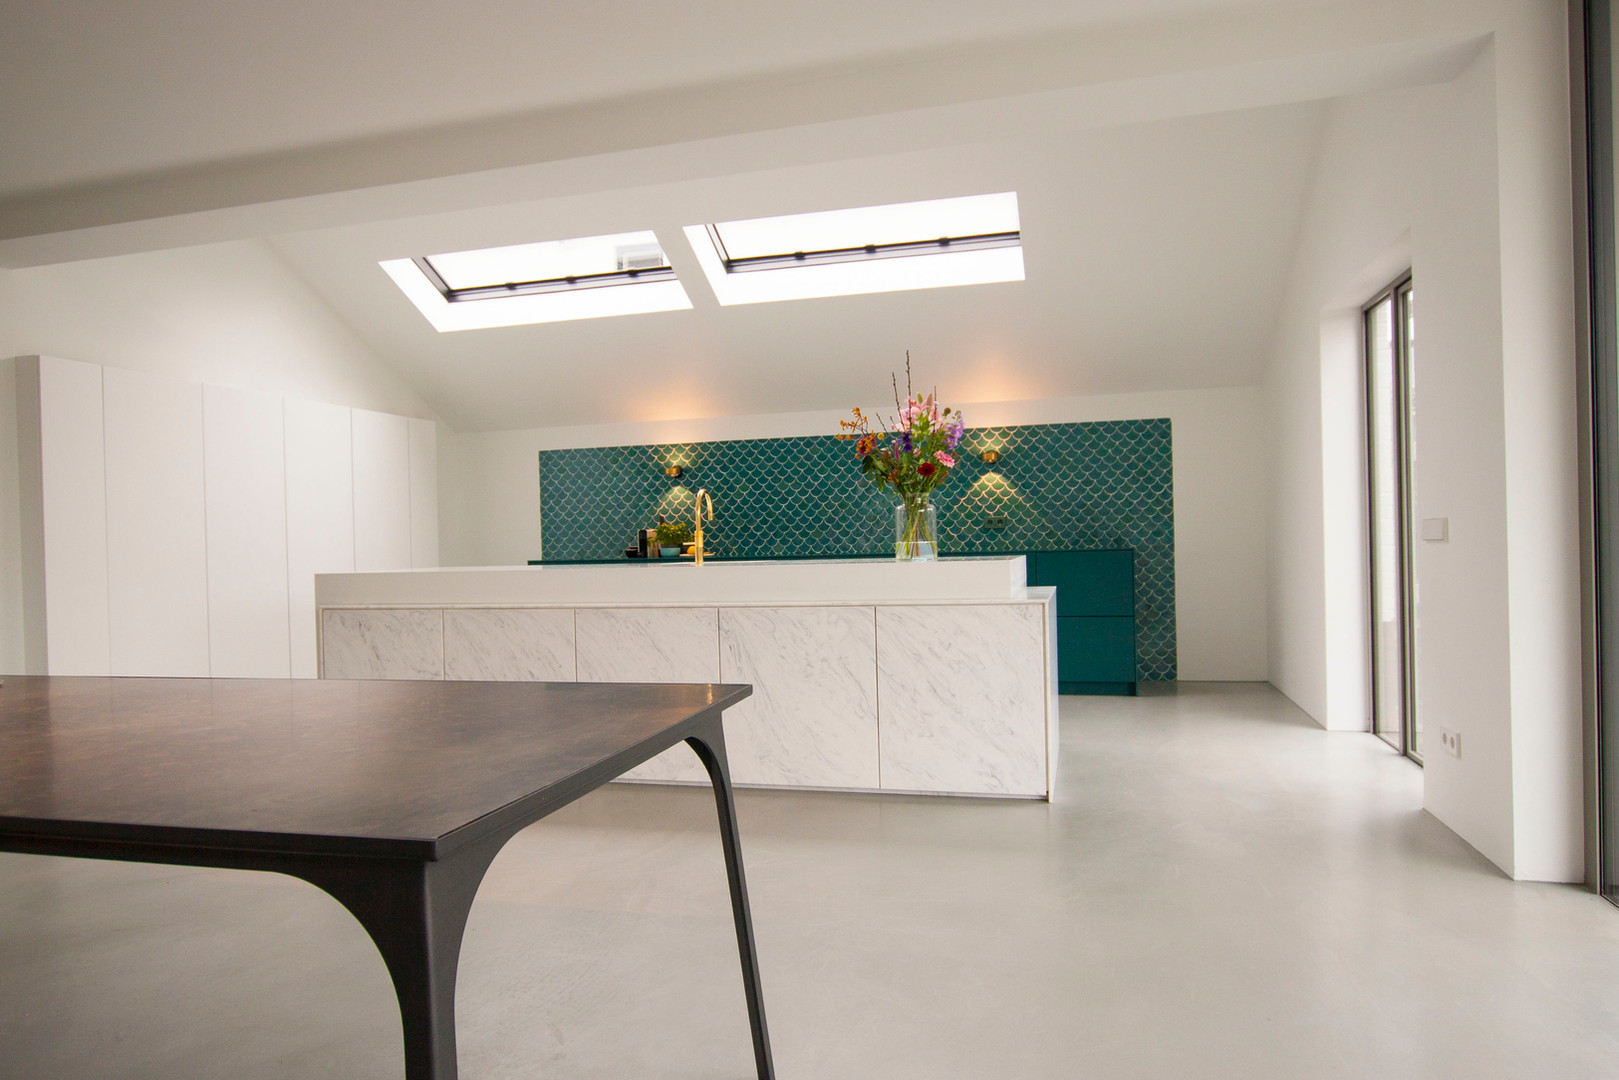 Kitchen solid surface - Atelier Ruben van Megen